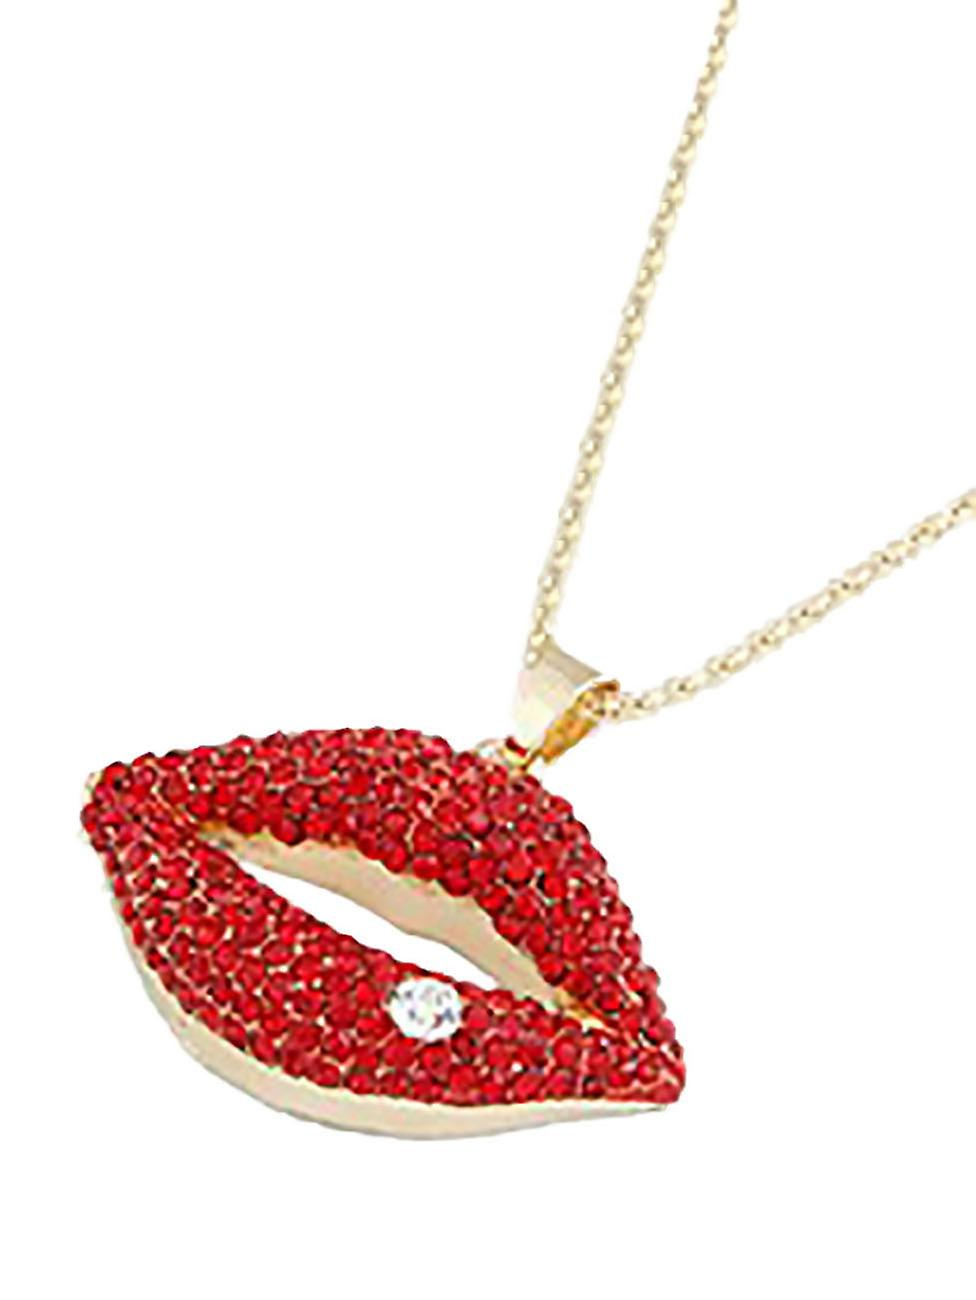 Waooh - collier long avec bouche en strass